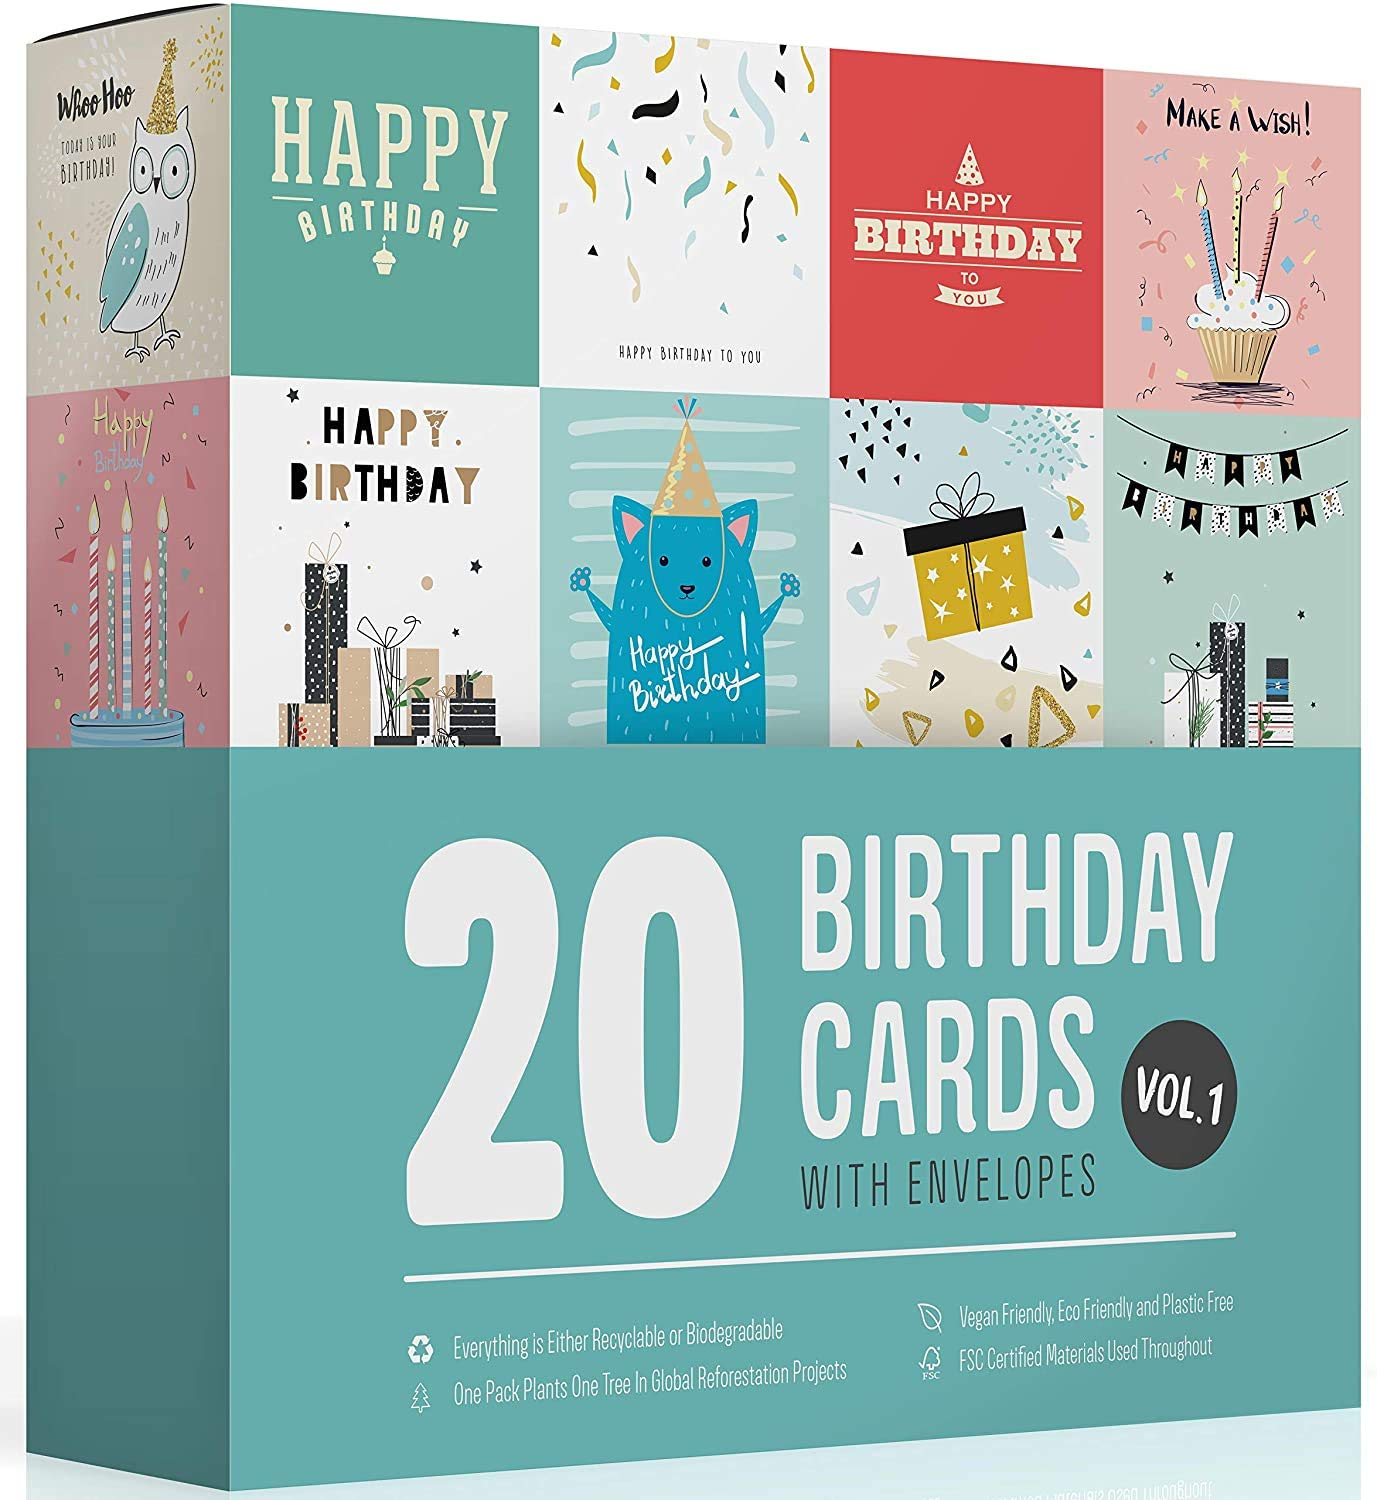 20 Birthday Cards Multipack Vol 1 by Wonder Cards | Eco Friendly | Suitable Women Men Kids